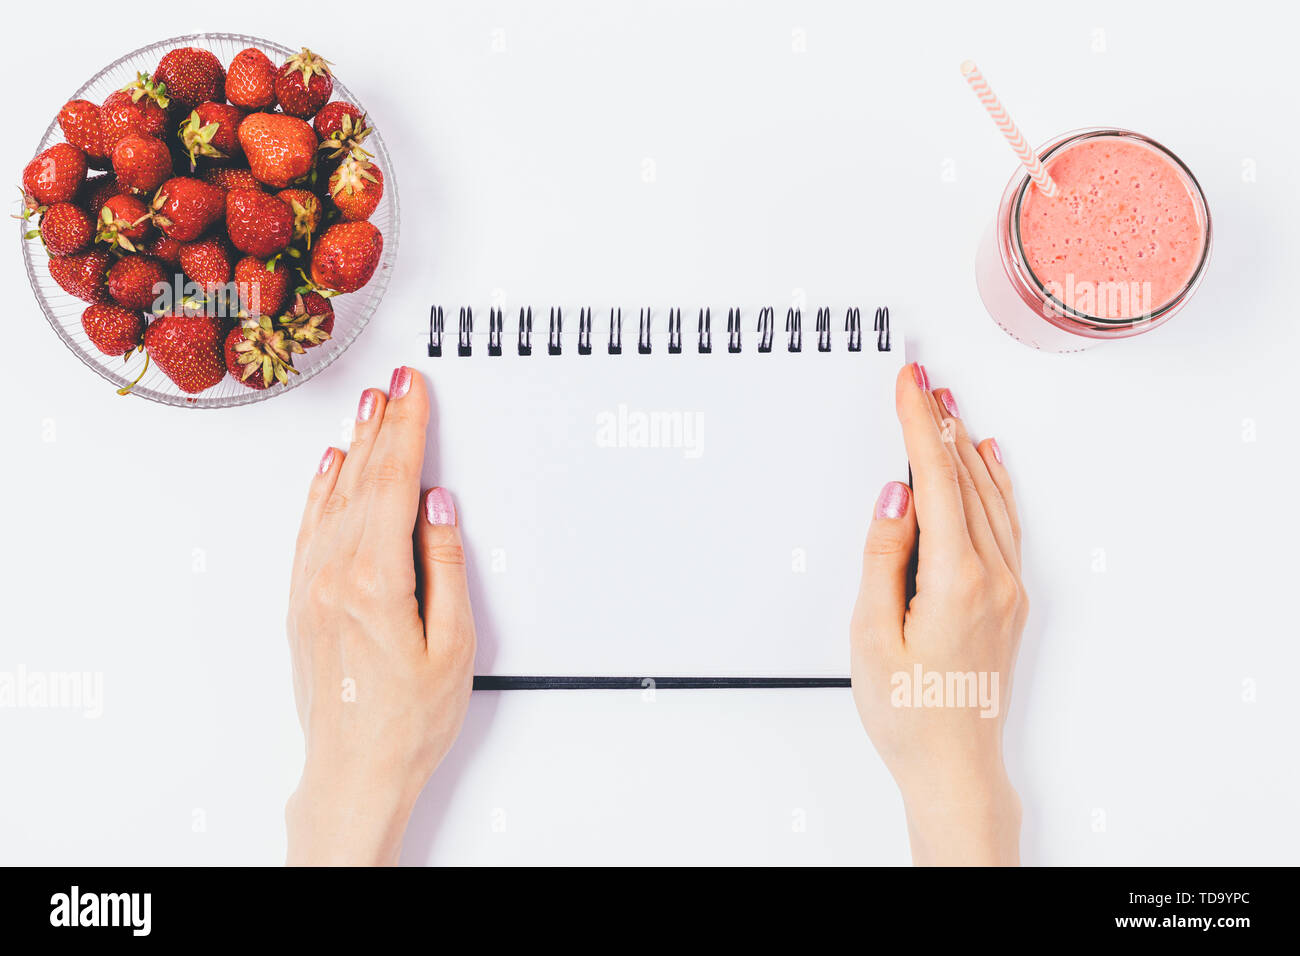 Woman's hands holding blank journal sheet near bowl of fresh strawberries and smoothie with straw on white background, flat lay composition. - Stock Image